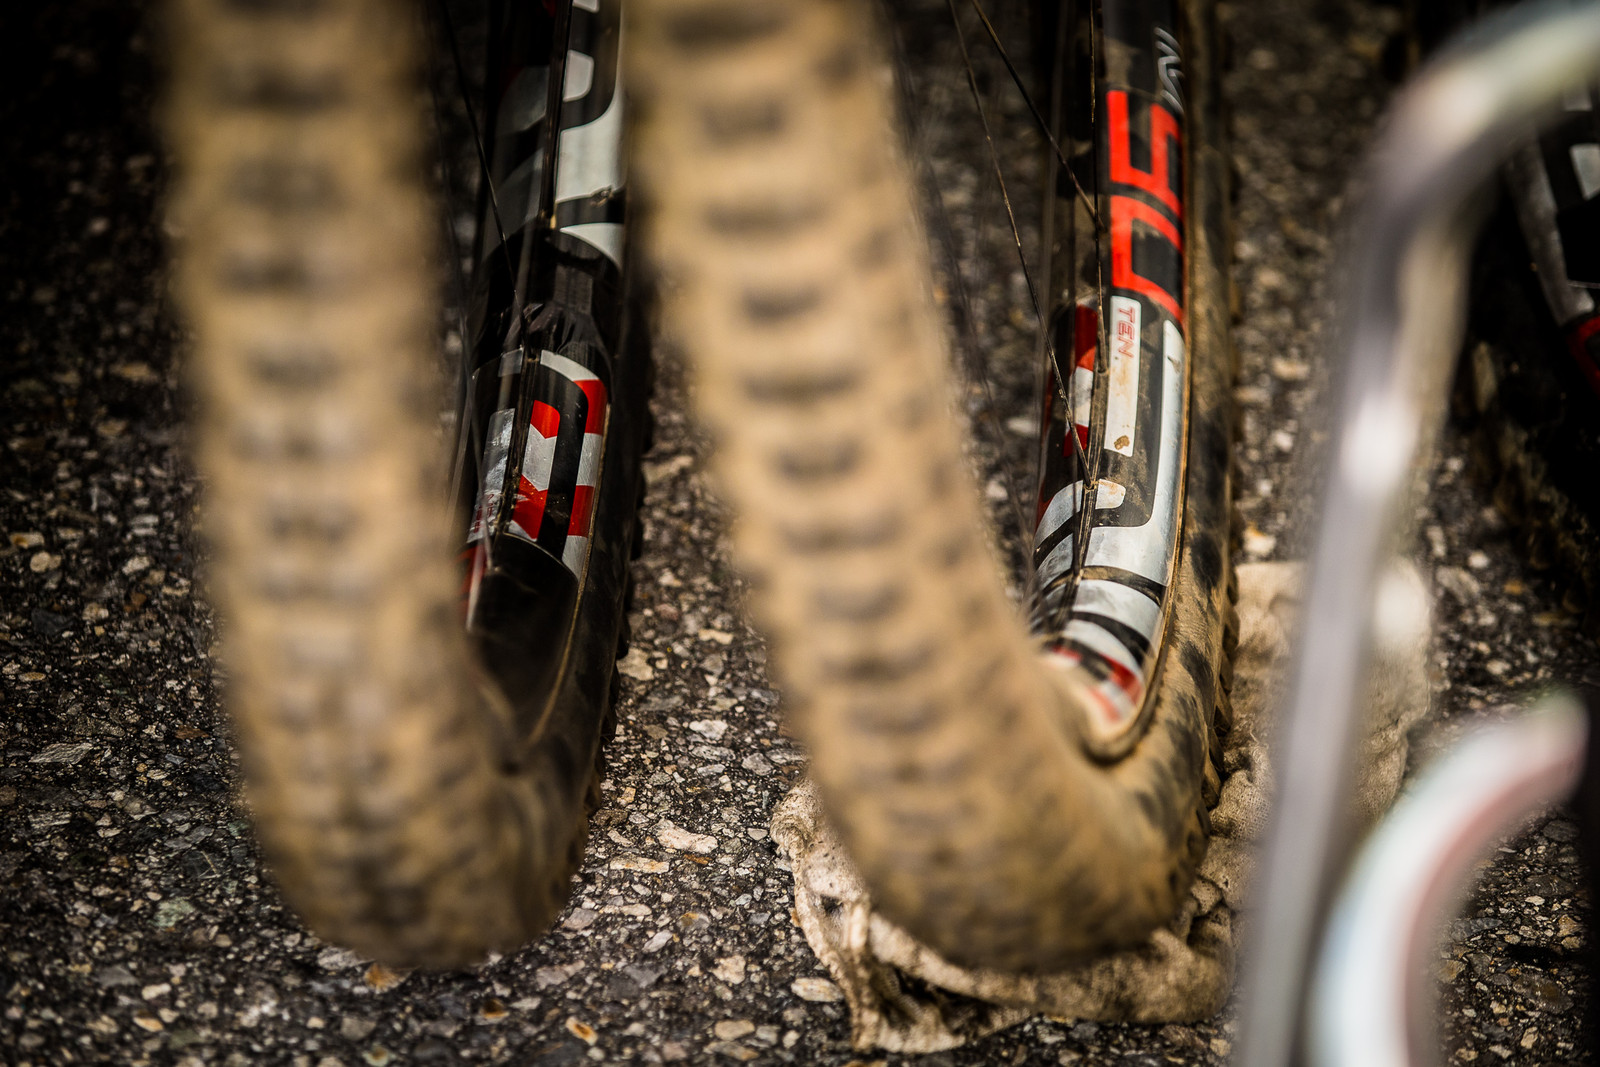 Extra Wide ENVE Rims? - PIT BITS - Lenzerheide World Cup DH - Mountain Biking Pictures - Vital MTB